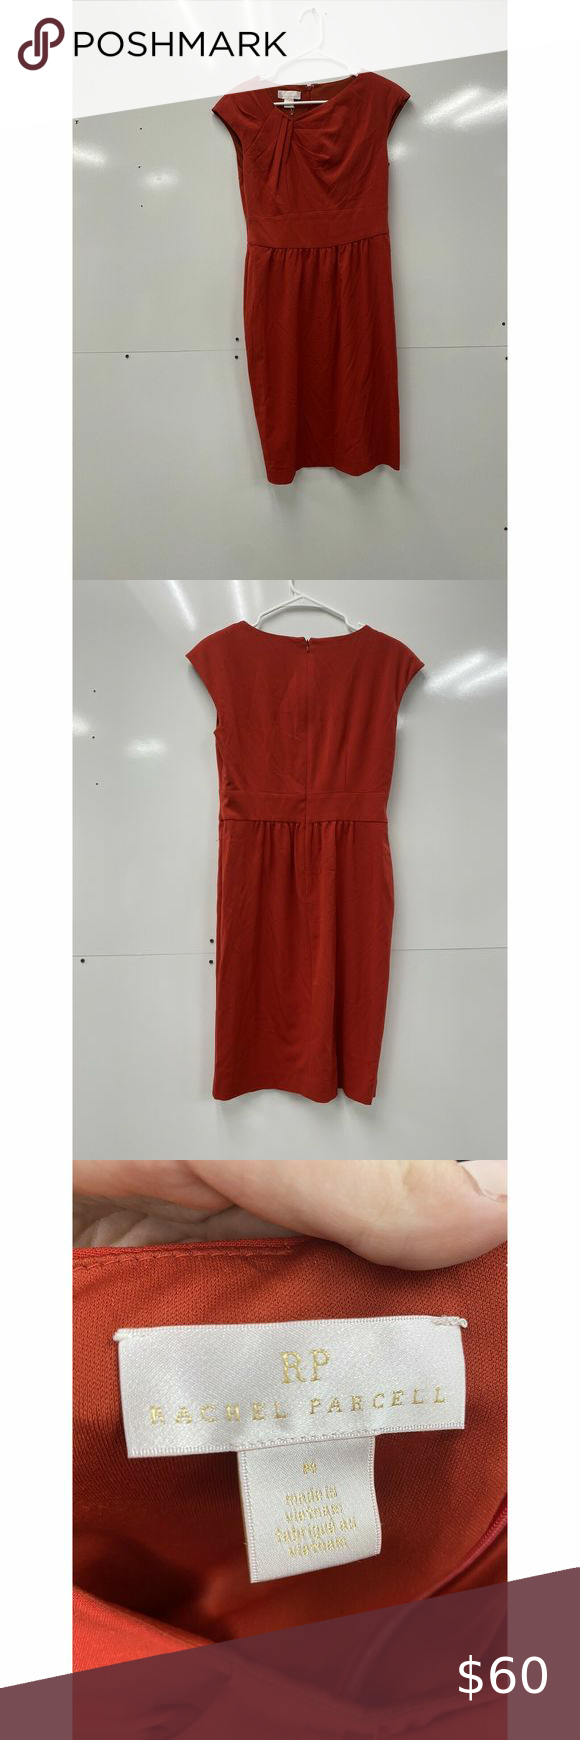 Nwot Nordstrom Rachel Parcell Red Dress M Red Dress Turquoise Maxi Dress Maxi Dress With Sleeves [ 1740 x 580 Pixel ]